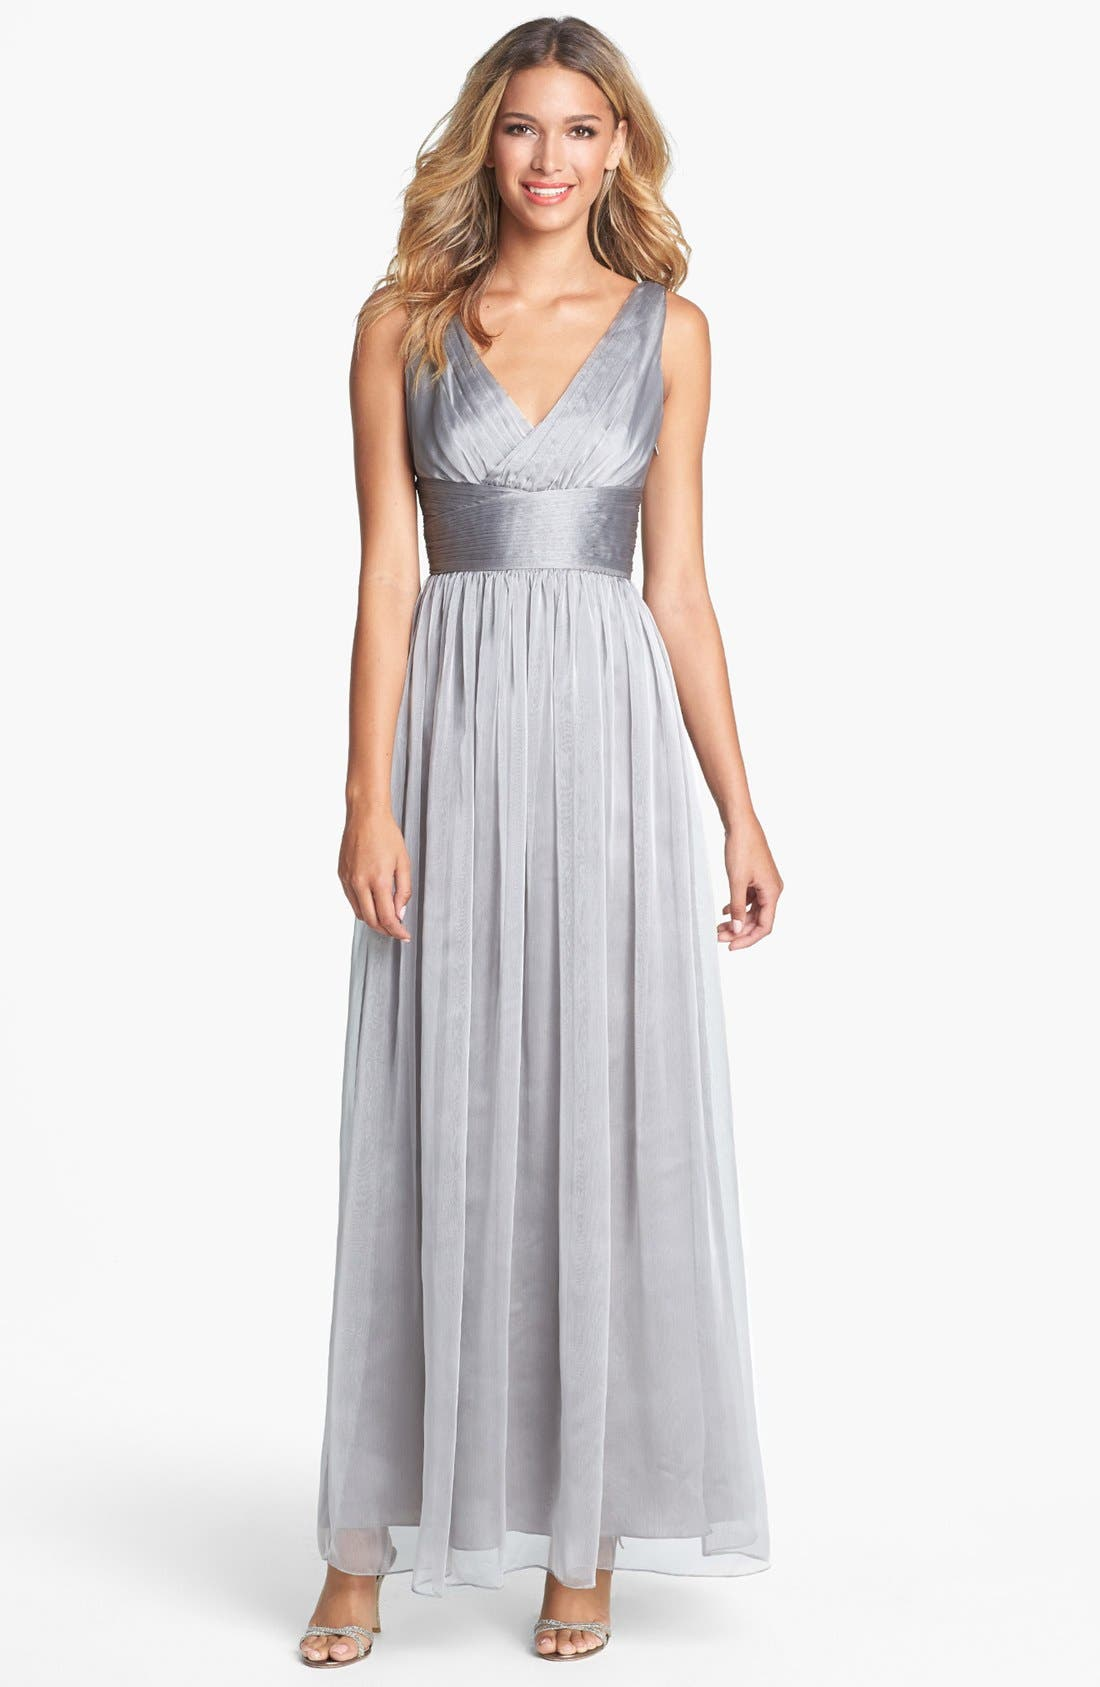 Alternate Image 1 Selected - Monique Lhuillier Bridesmaids Sleeveless Ruched Chiffon Dress (Nordstrom Exclusive)